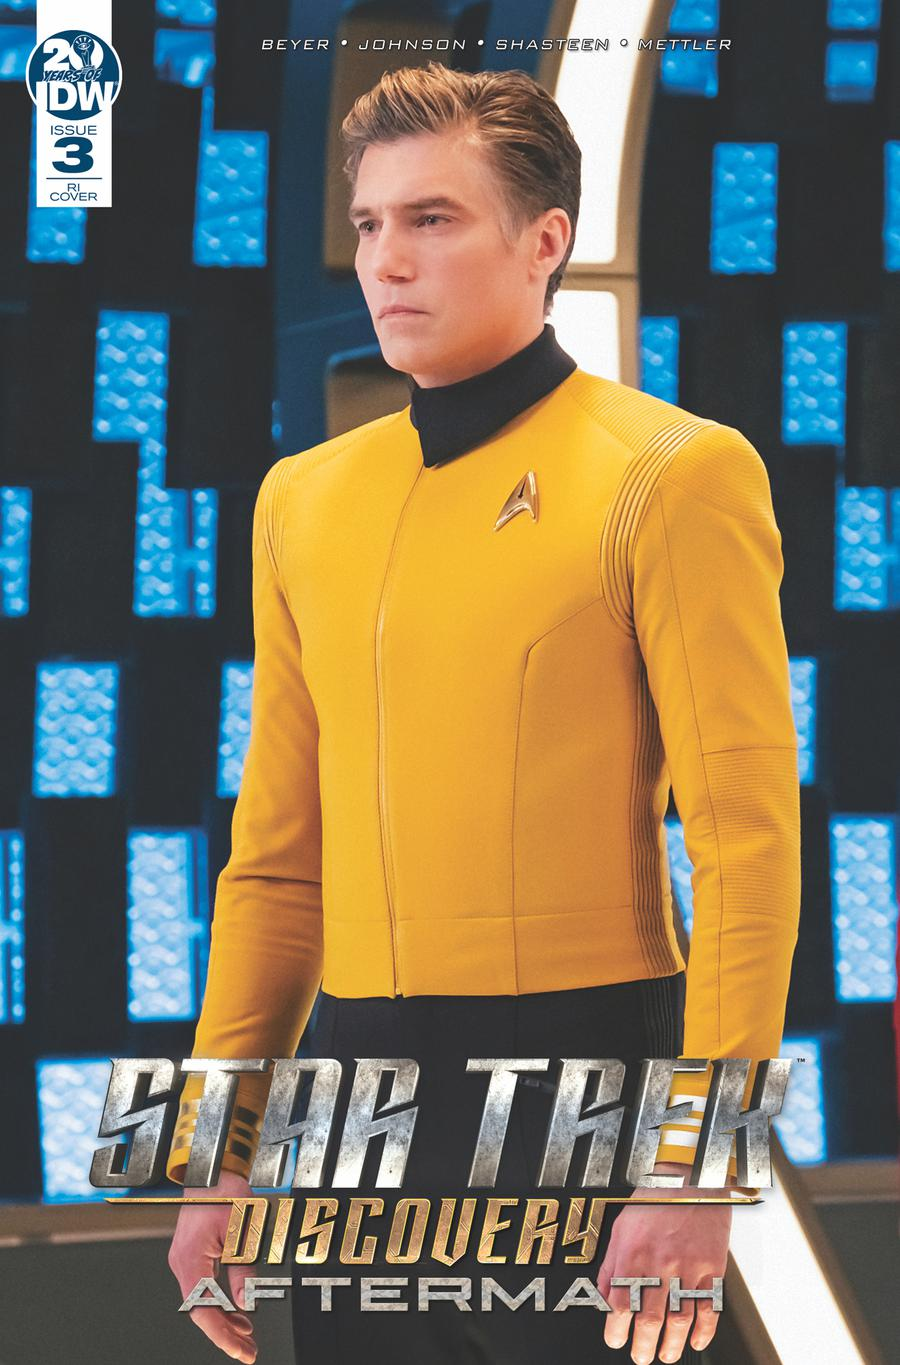 Star Trek Discovery Aftermath #3 Cover B Incentive Photo Variant Cover